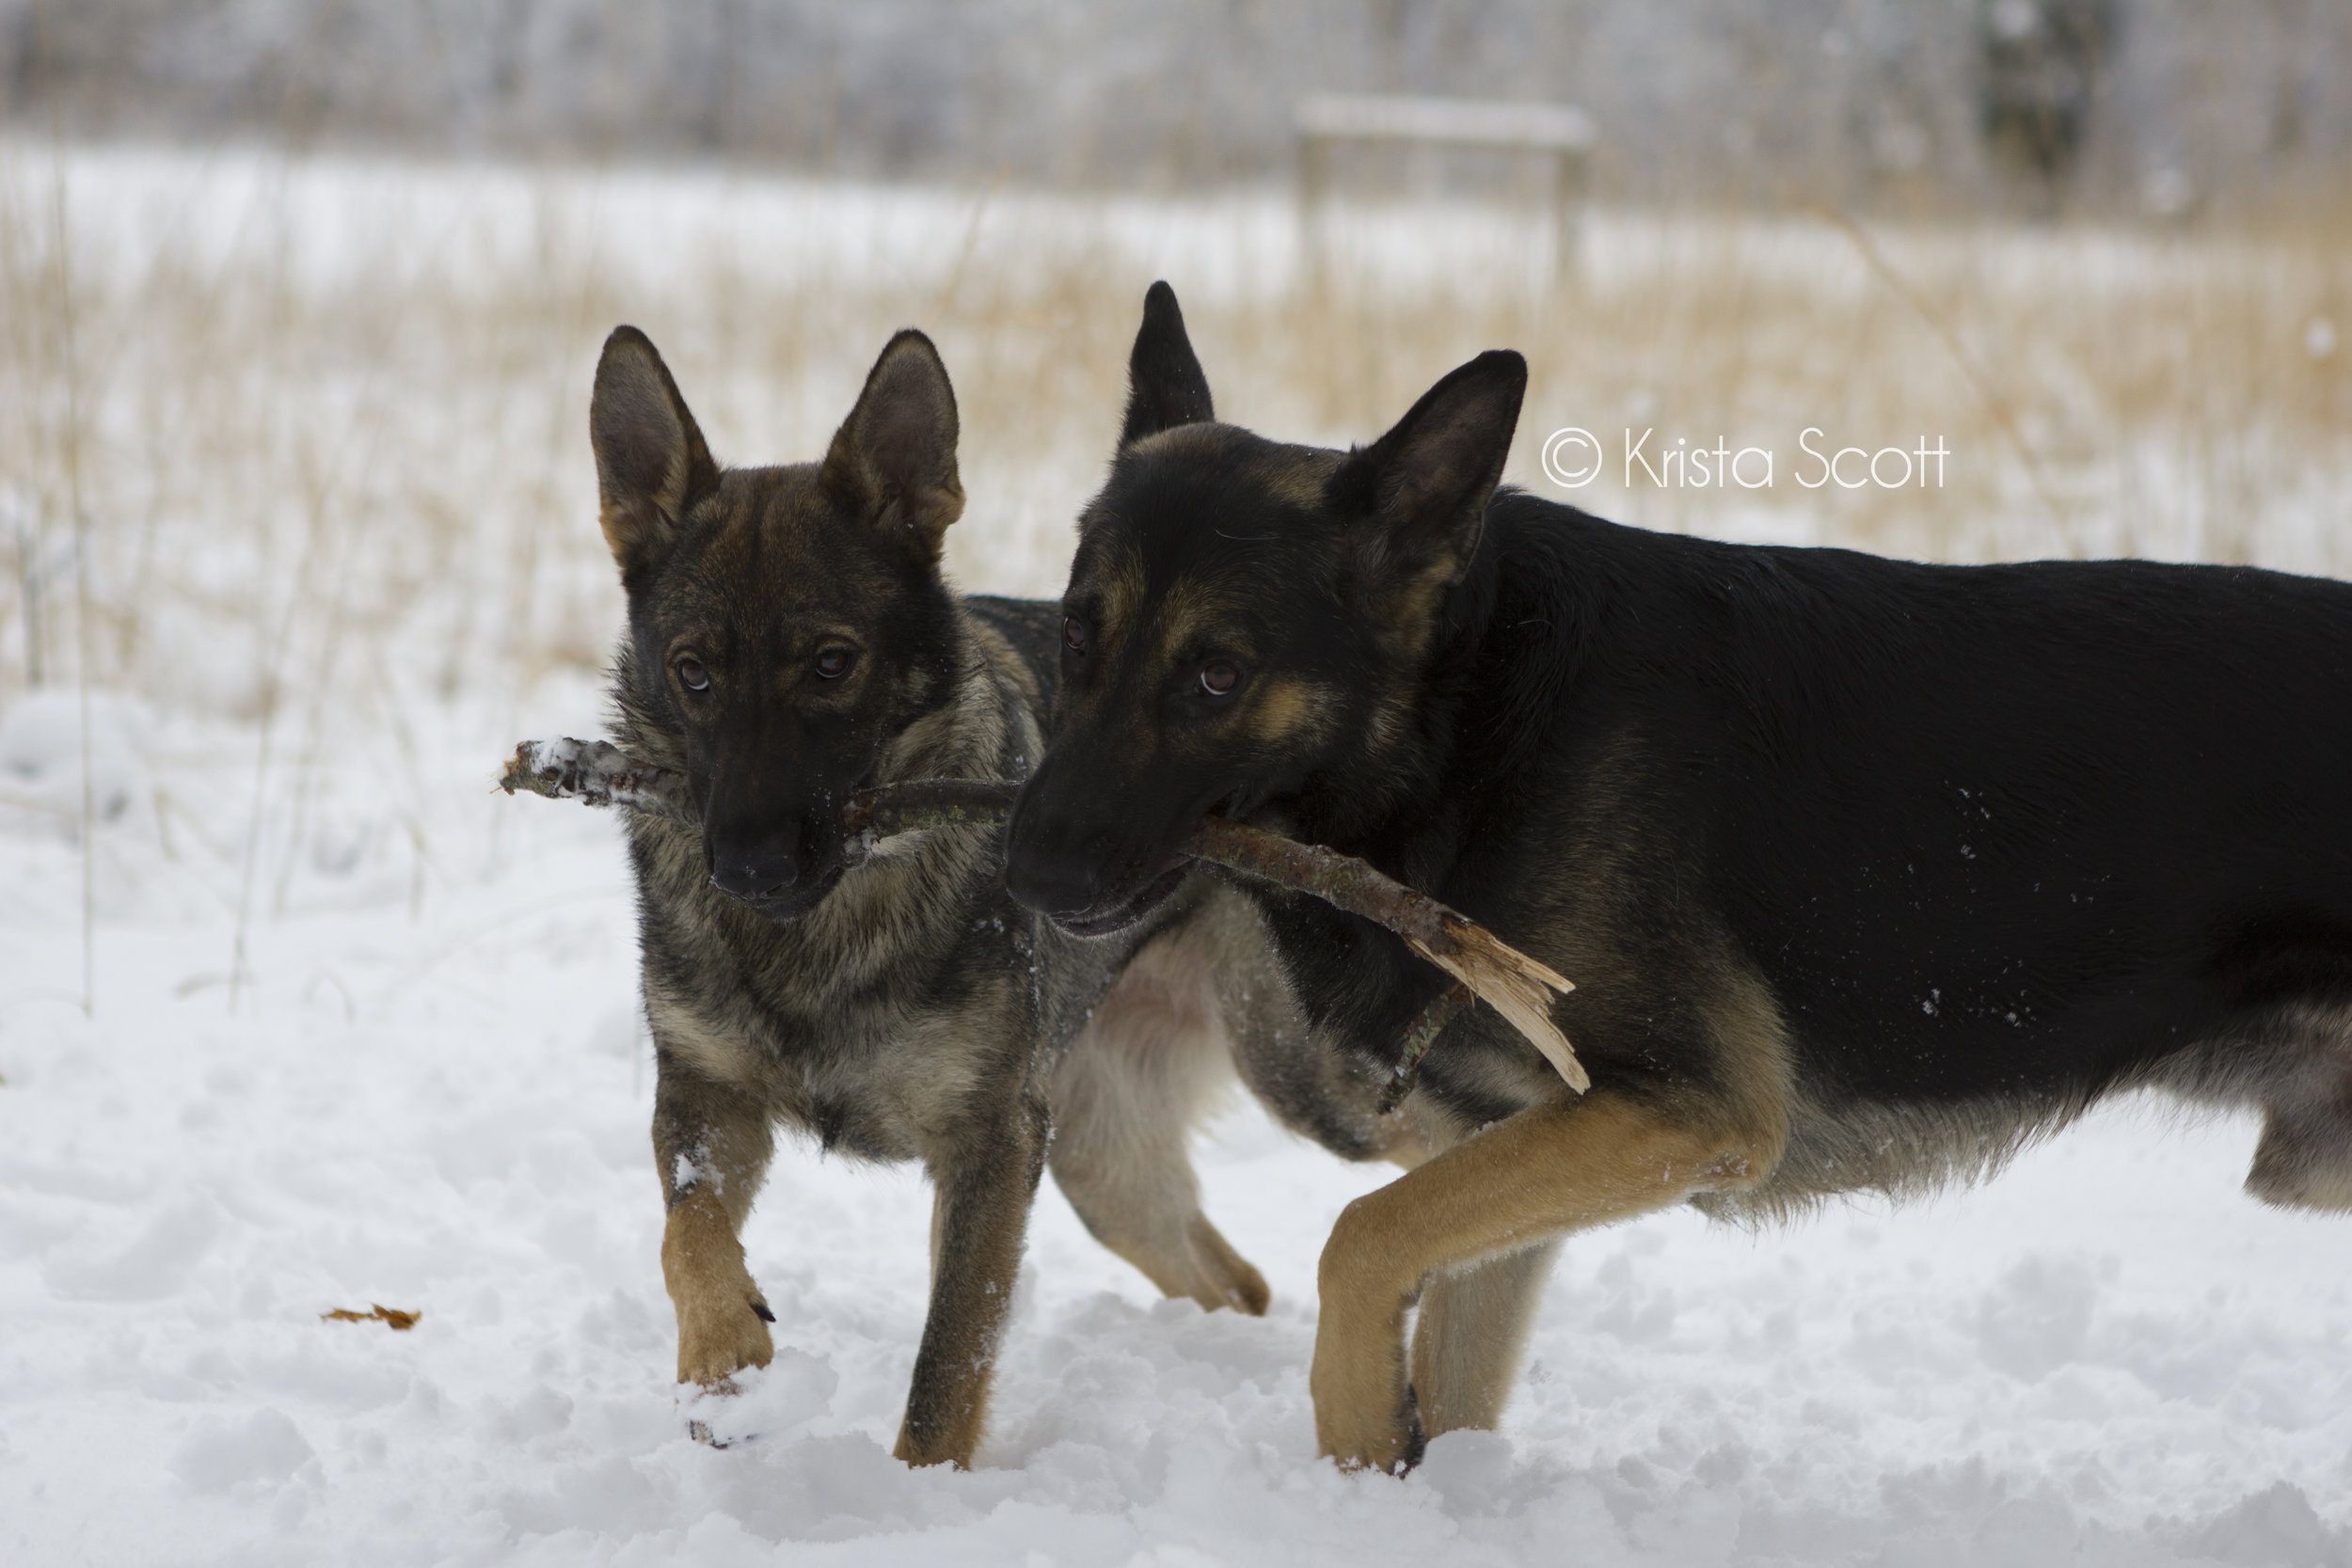 Karma as a puppy and Jonas